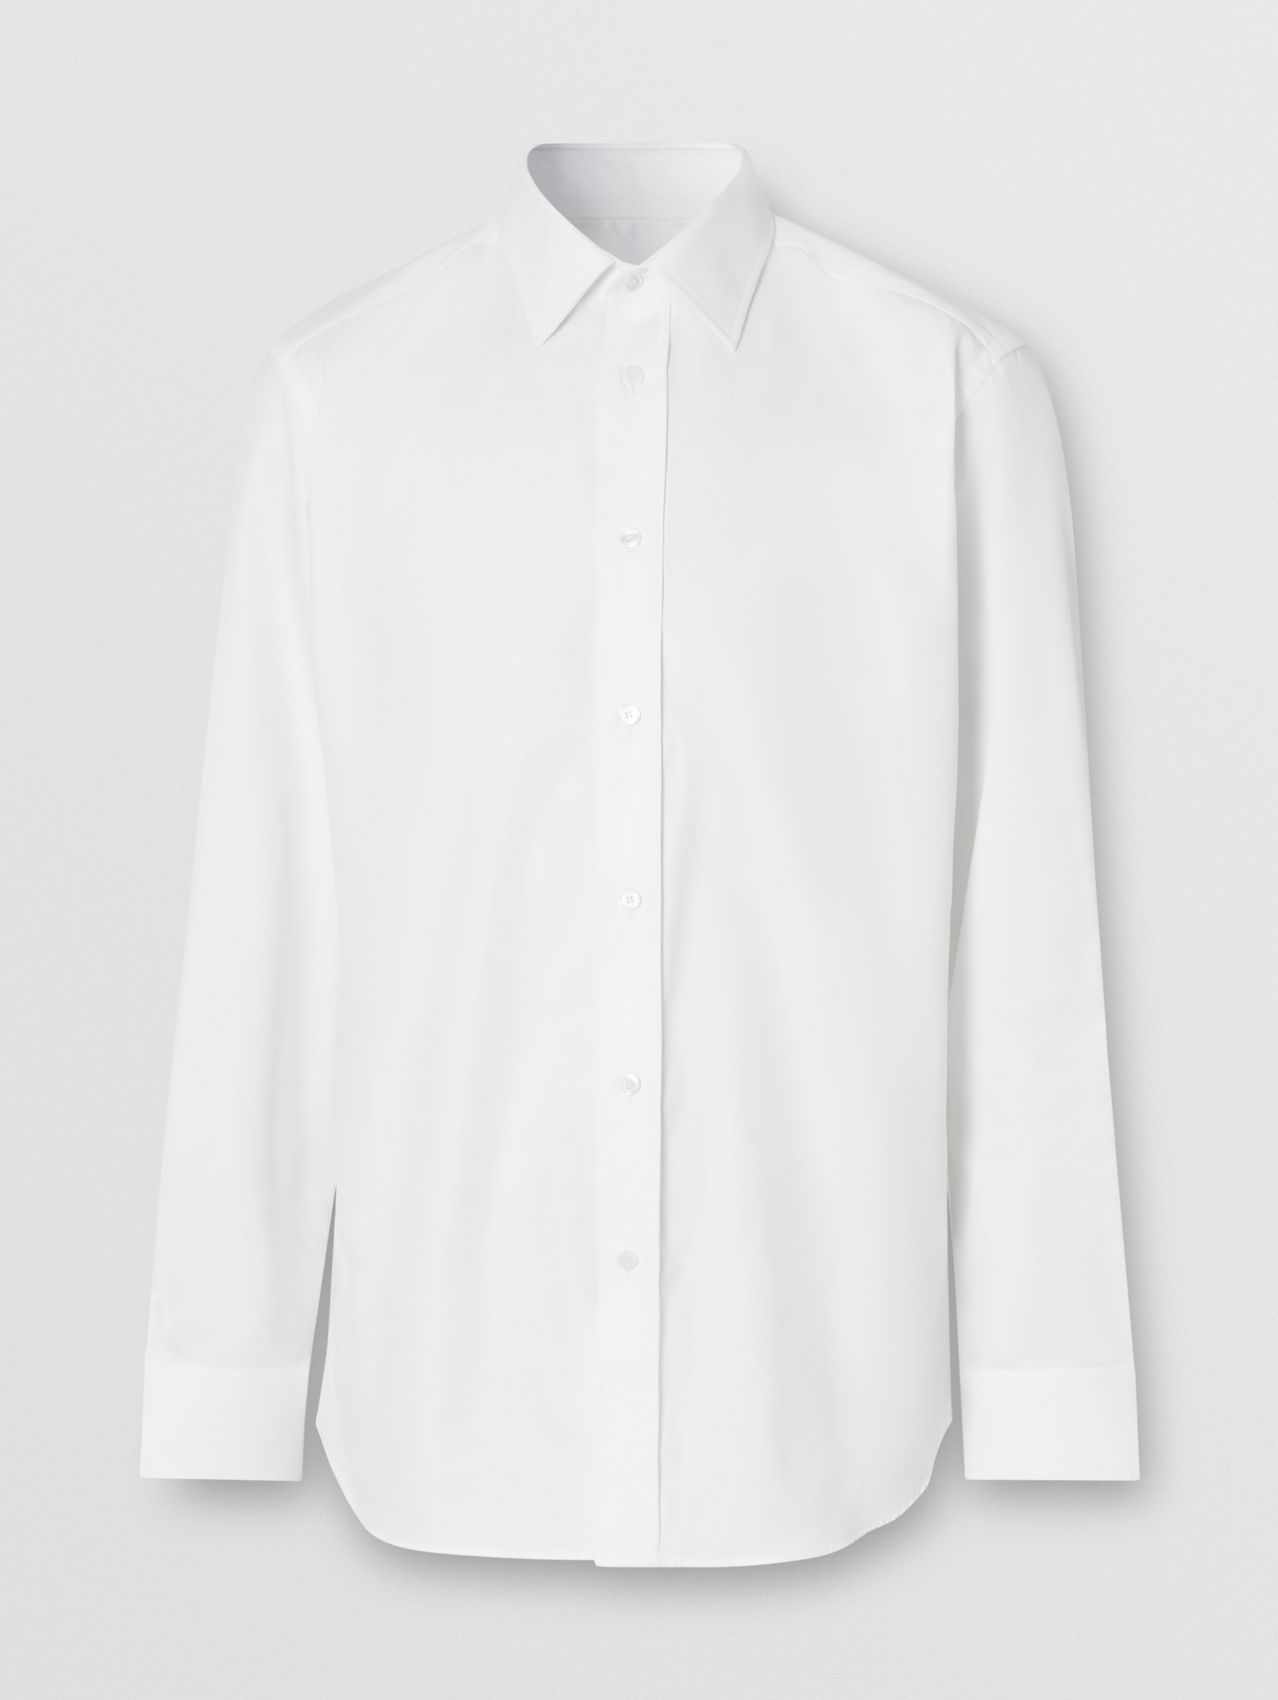 Classic Fit Monogram Motif Cotton Oxford Shirt (White)